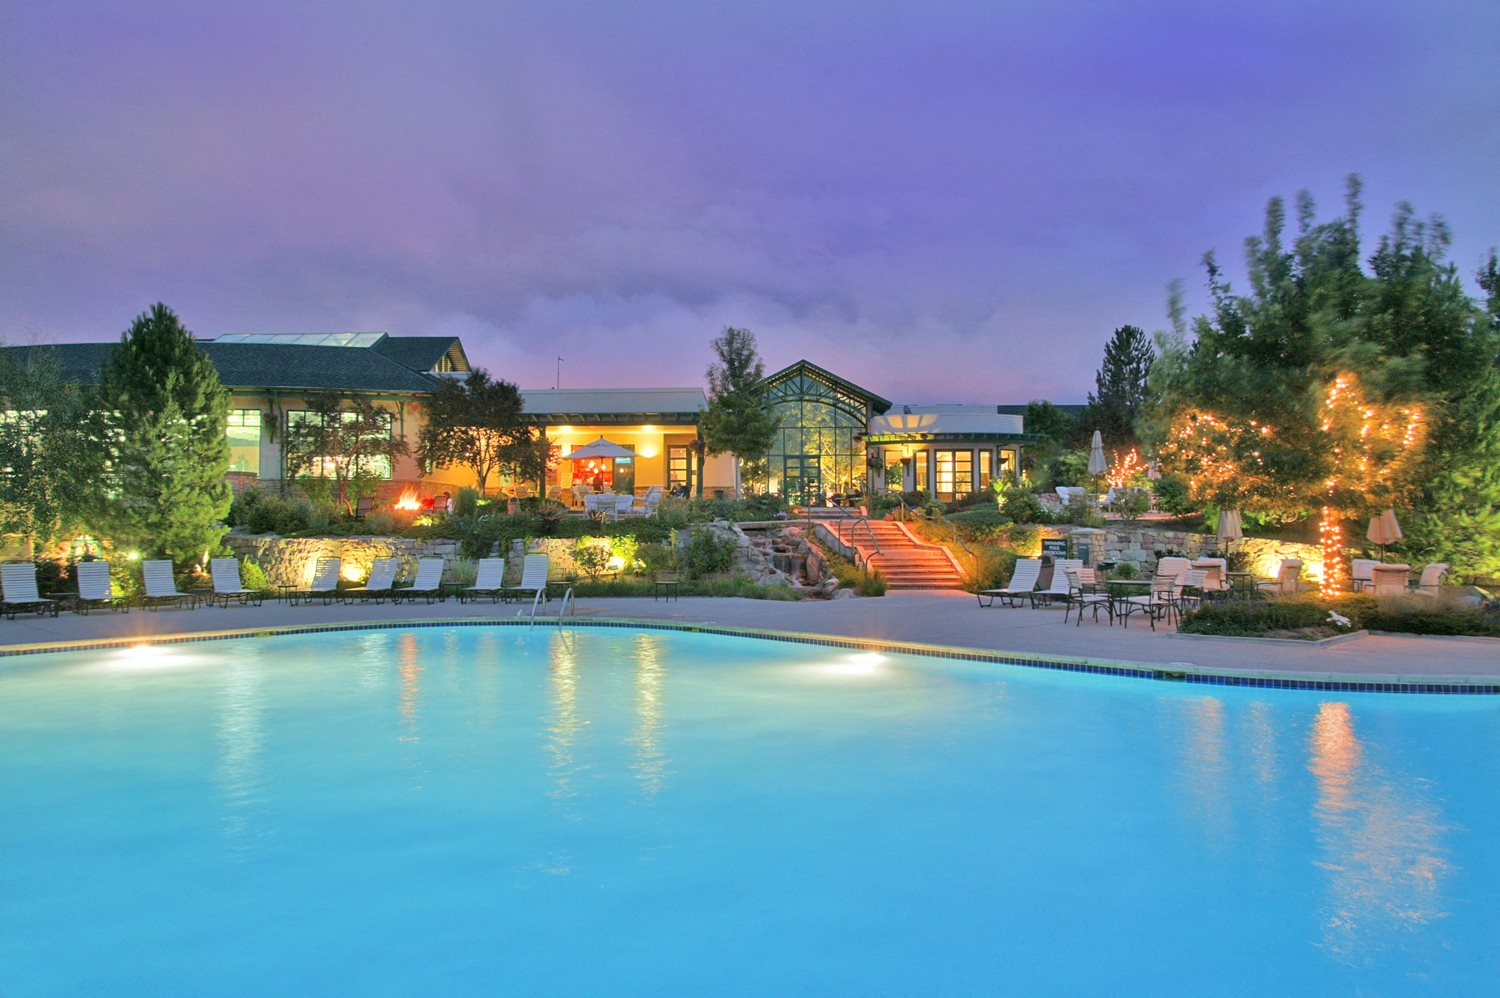 ColoradoClub-Resort size pool and spa